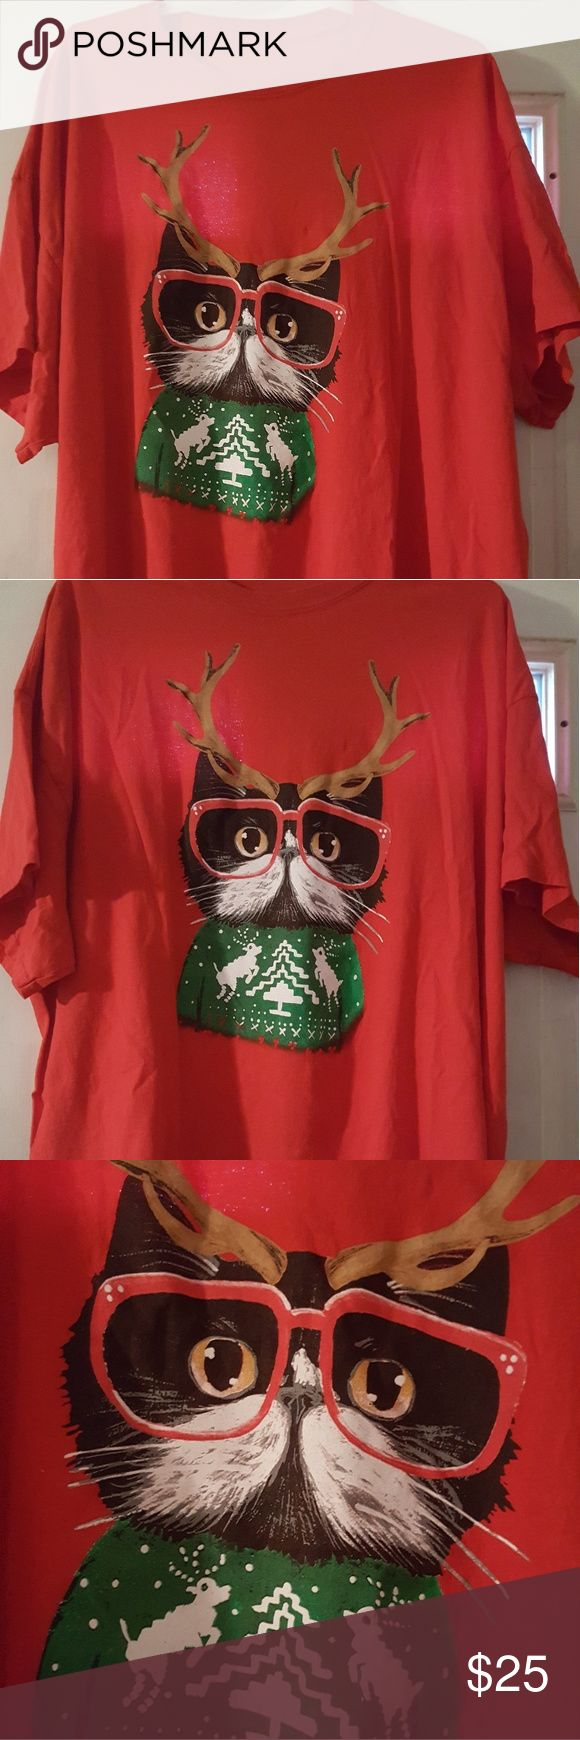 Ugly Christmas cat t-shirt ladies 3x Red Ladies 3x Ugly Christmas T-shirt in red with cure cat wearing red glasses and reindeer horns and his own ugly christmas sweater!  Size is ladies 3x measures 26 inches shoulder to shoulder  Measures 30 inches from shoulder to hem Tops Tees - Short Sleeve